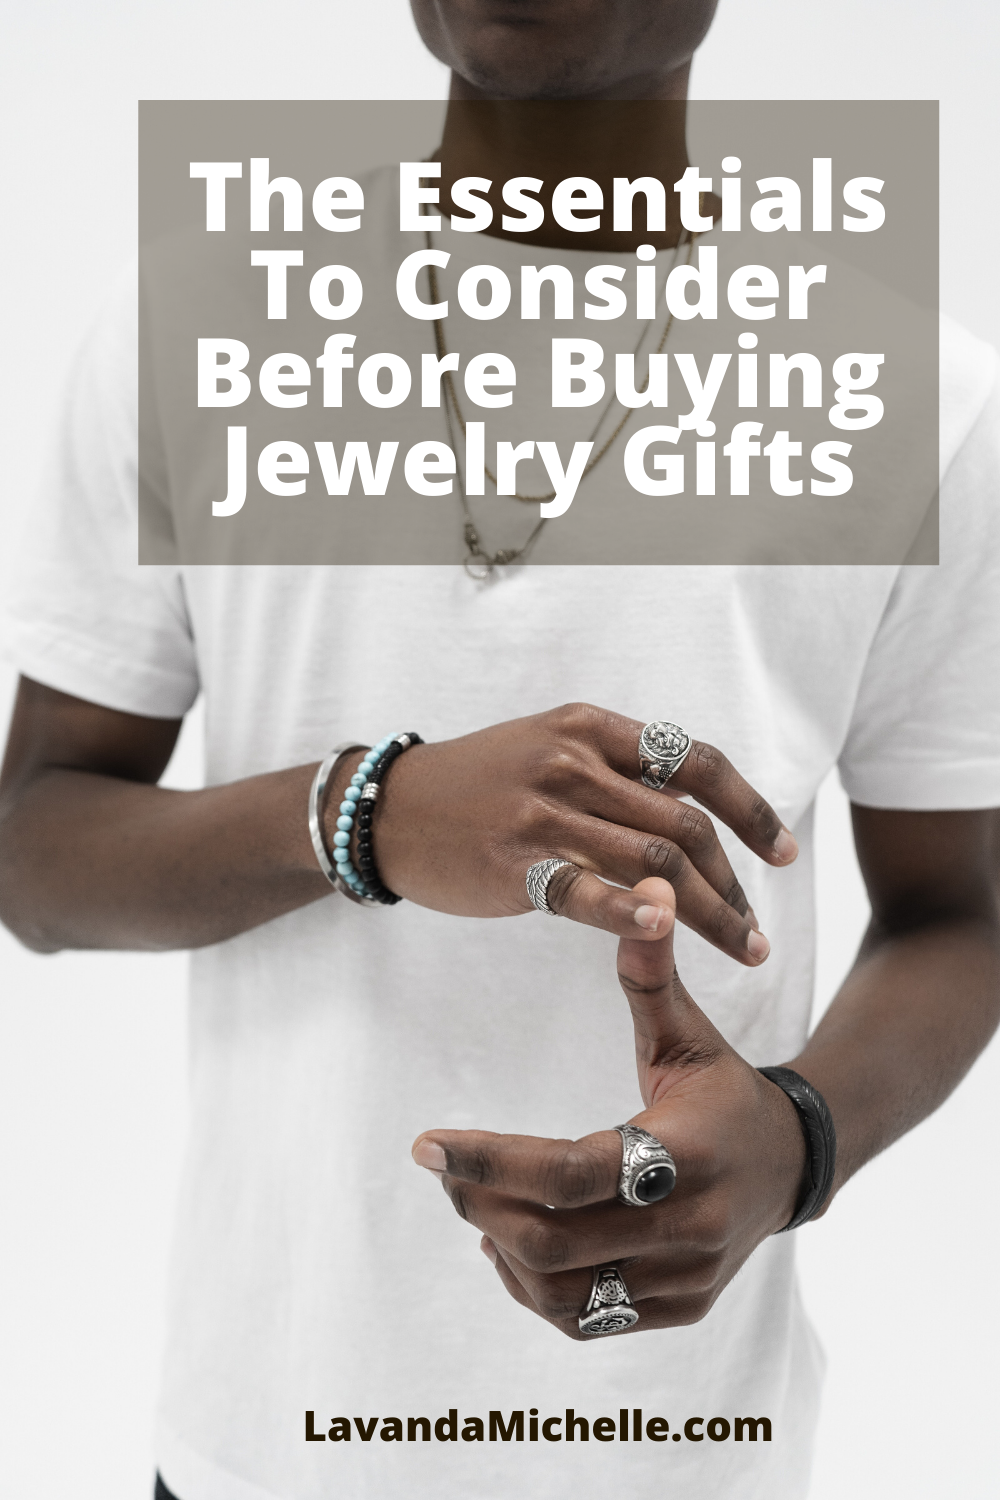 The Essentials To Consider Before Buying Jewelry Gifts (1)